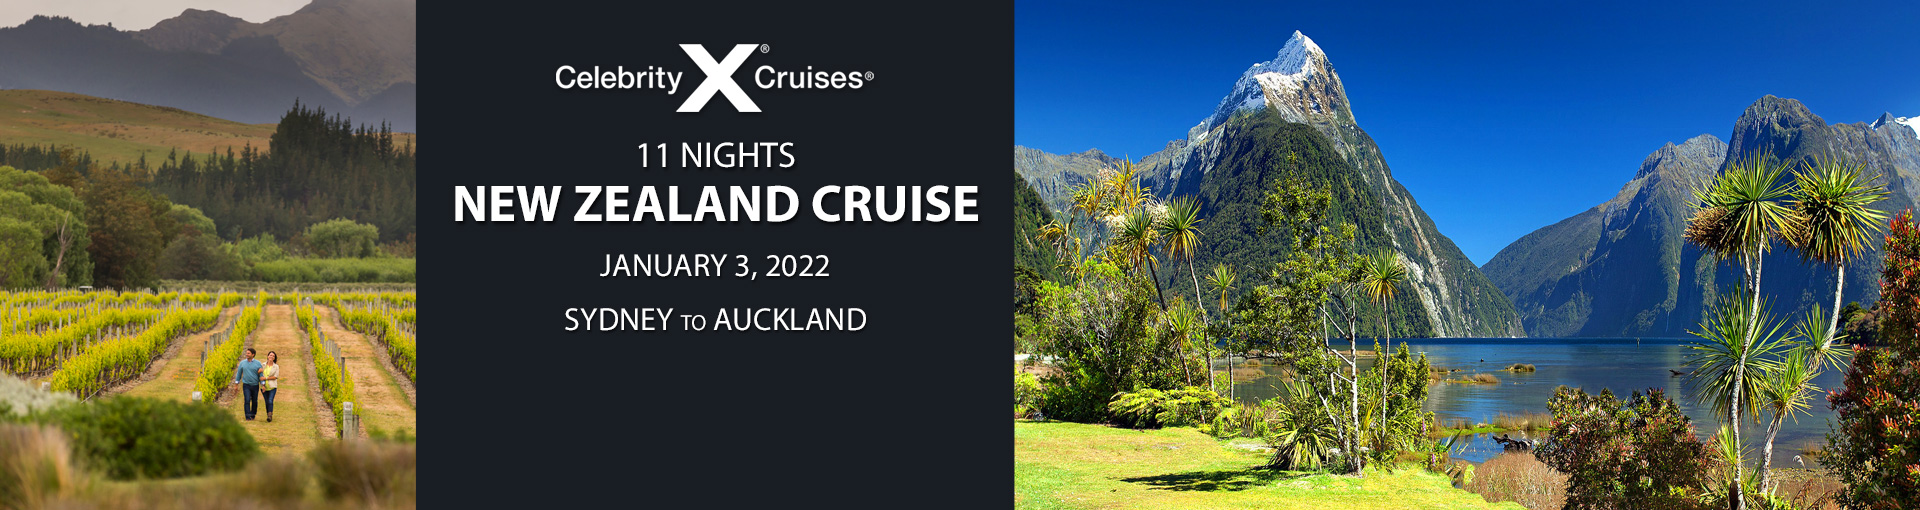 Exclusive Travelzoo offer for Celebrity Cruises' New Zealand Itinerary